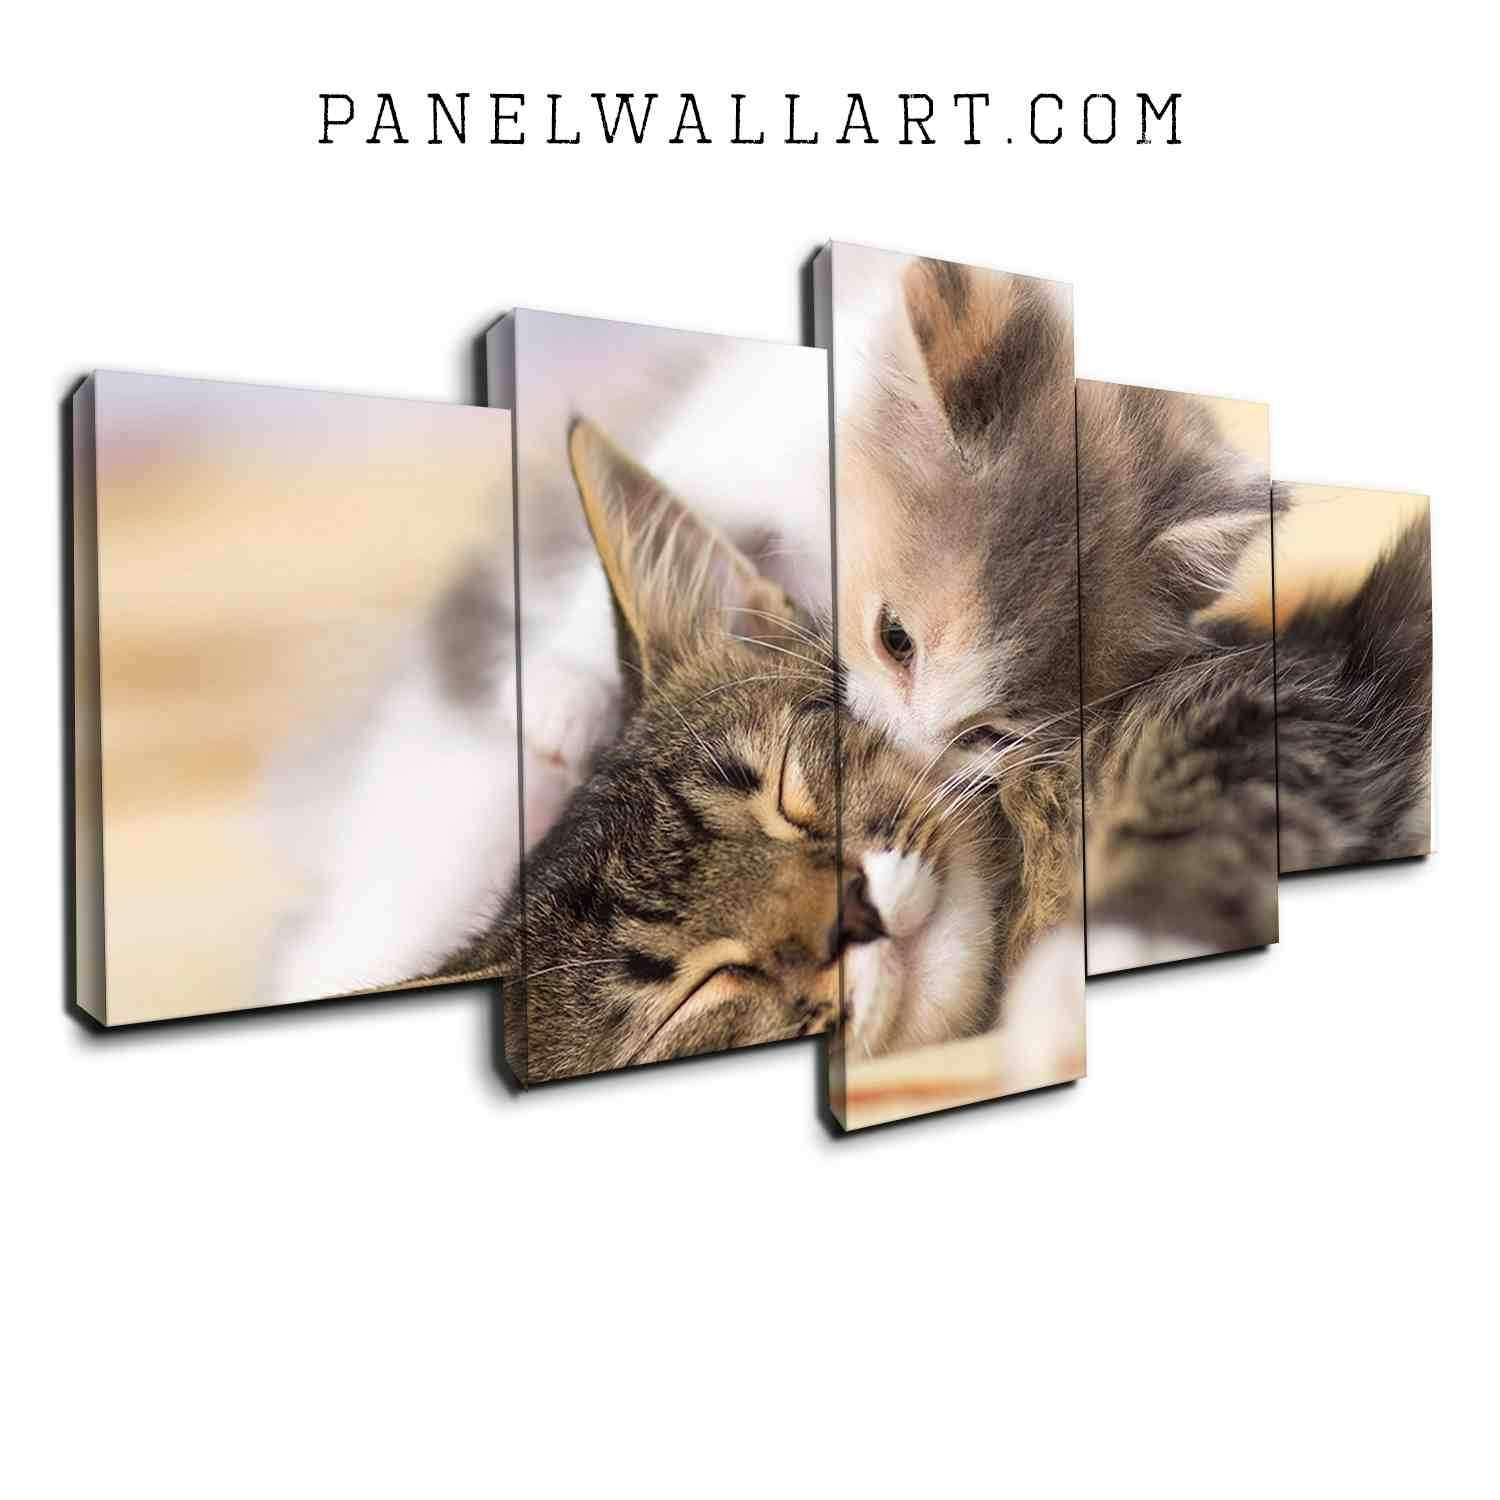 5 Panel Canvas Wall Art | Kissing Kitten On Bed | Panelwallart In Cat Canvas Wall Art (Photo 6 of 20)